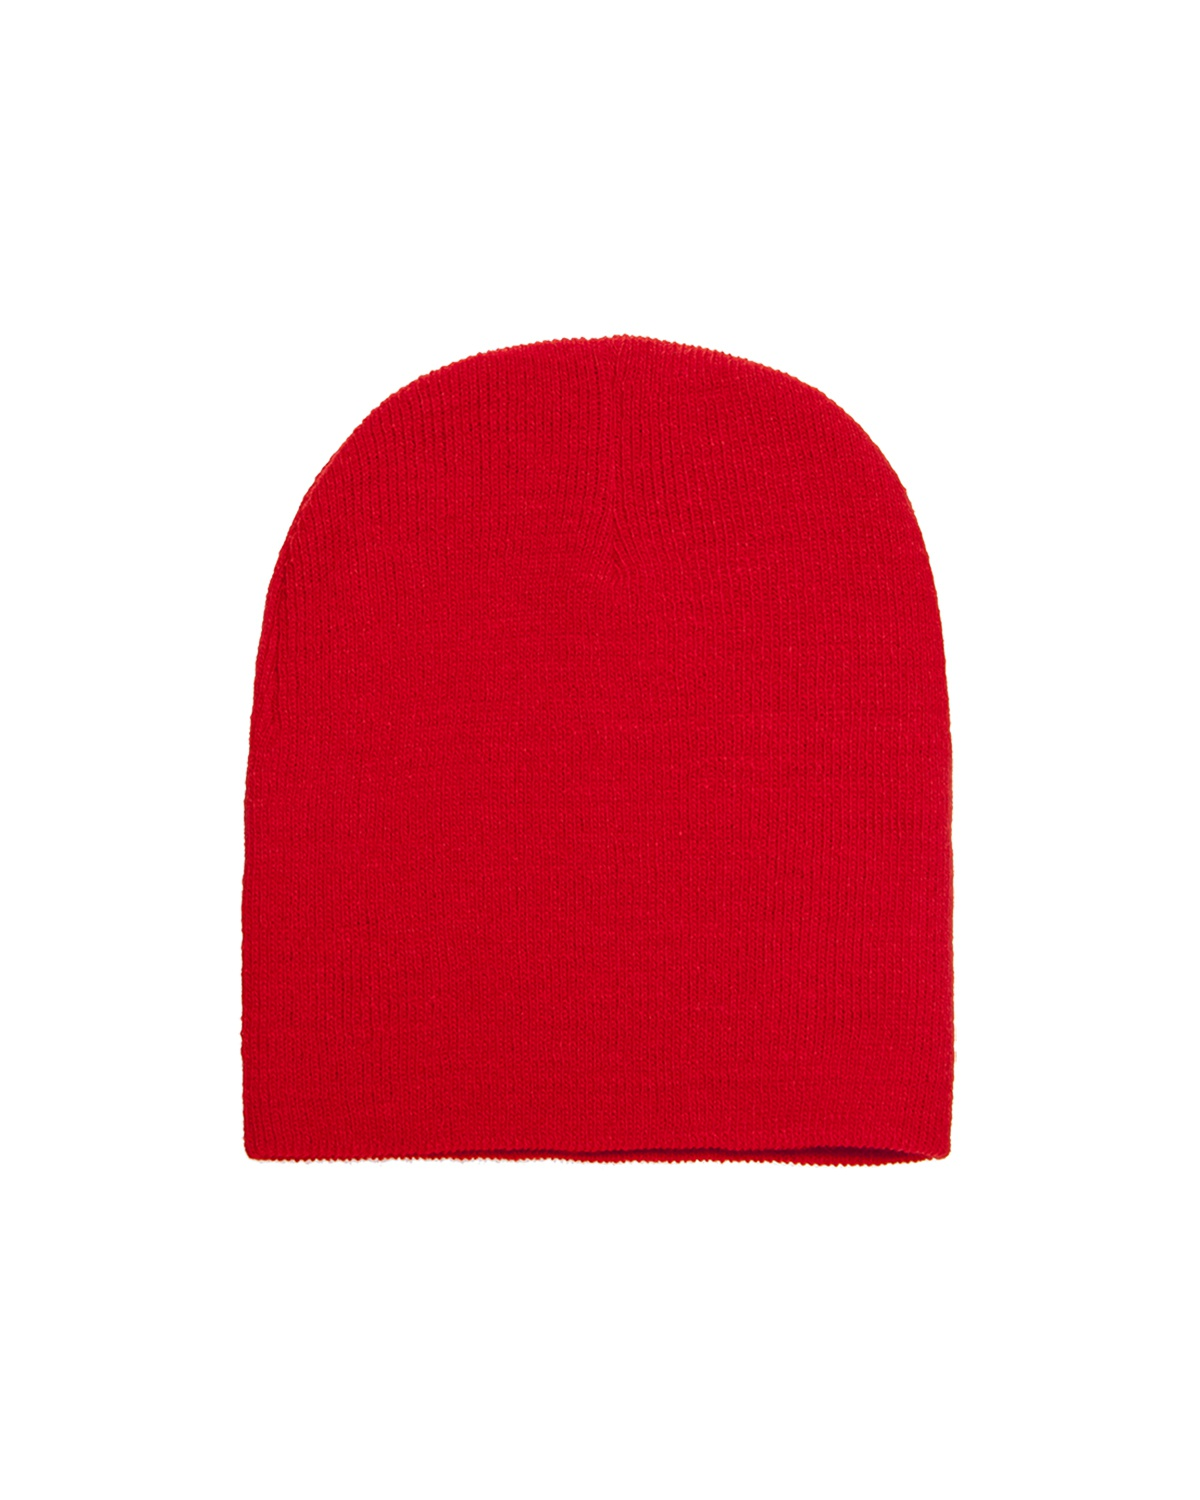 'Yupoong 1500 Adult Knit Beanie'